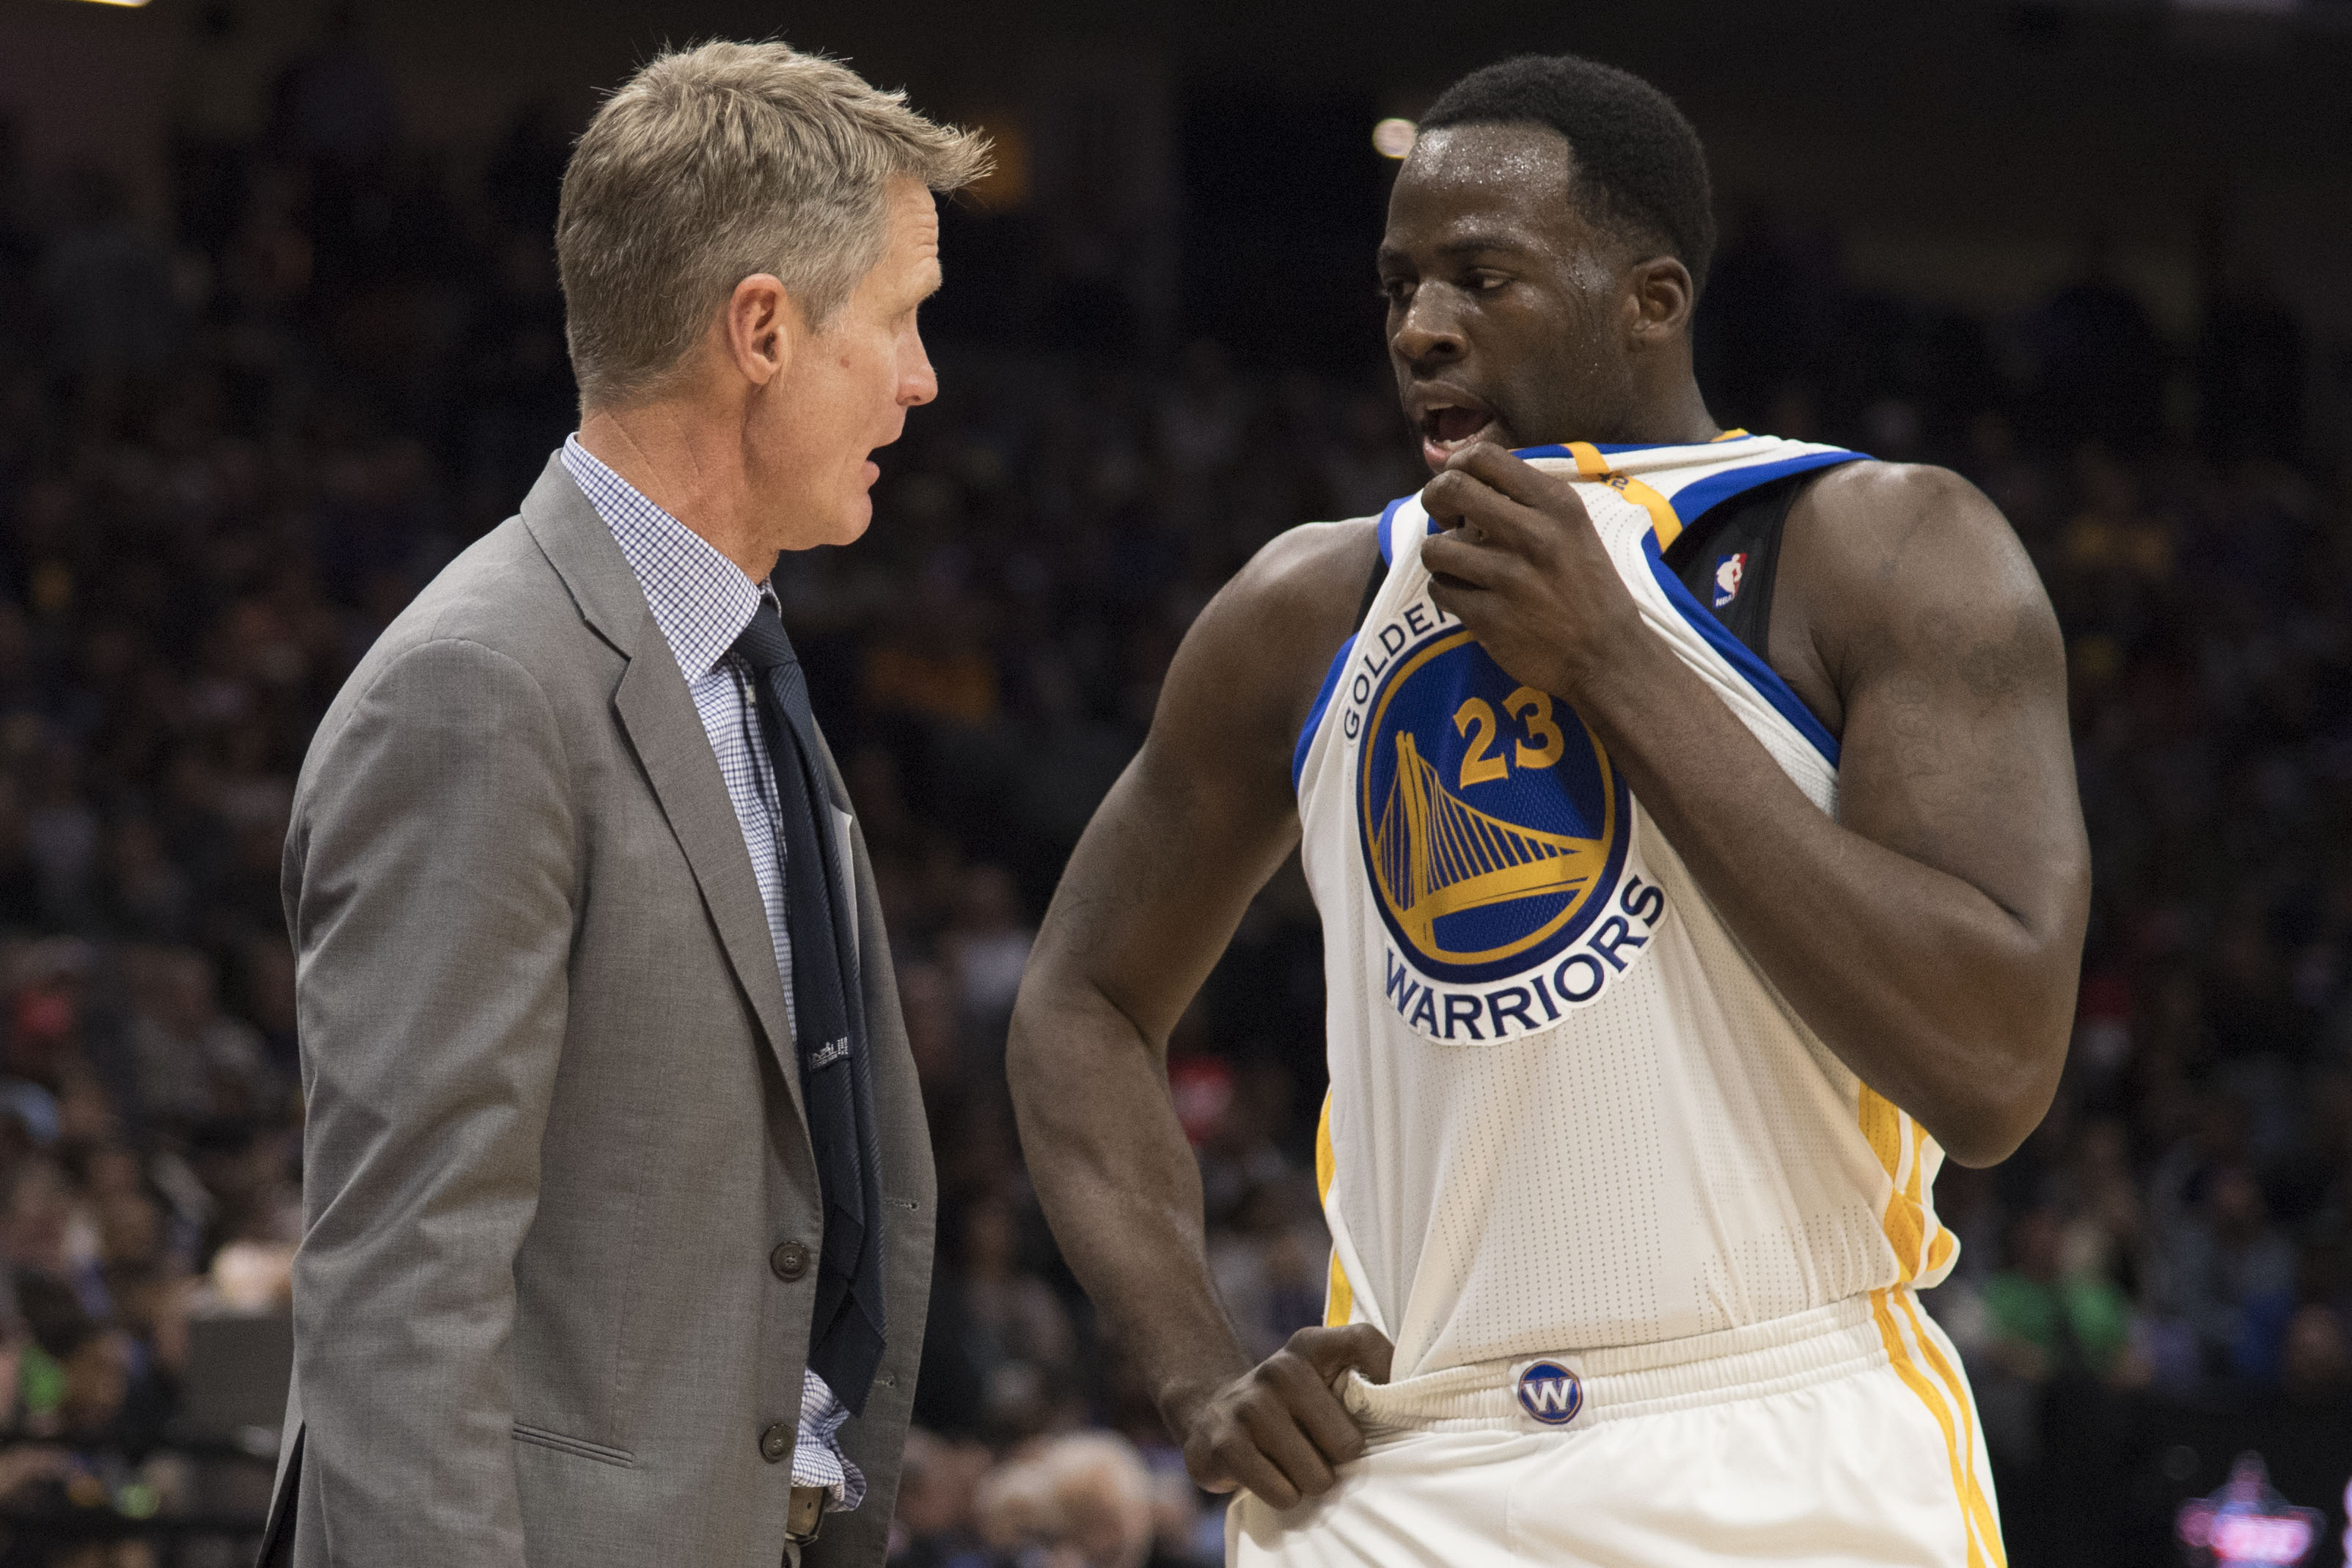 January 8, 2017; Sacramento, CA, USA; Golden State Warriors head coach Steve Kerr (left) instructs forward Draymond Green (23) against the Sacramento Kings during the third quarter at Golden 1 Center. The Warriors defeated the Kings 117-106. Mandatory Credit: Kyle Terada-USA TODAY Sports